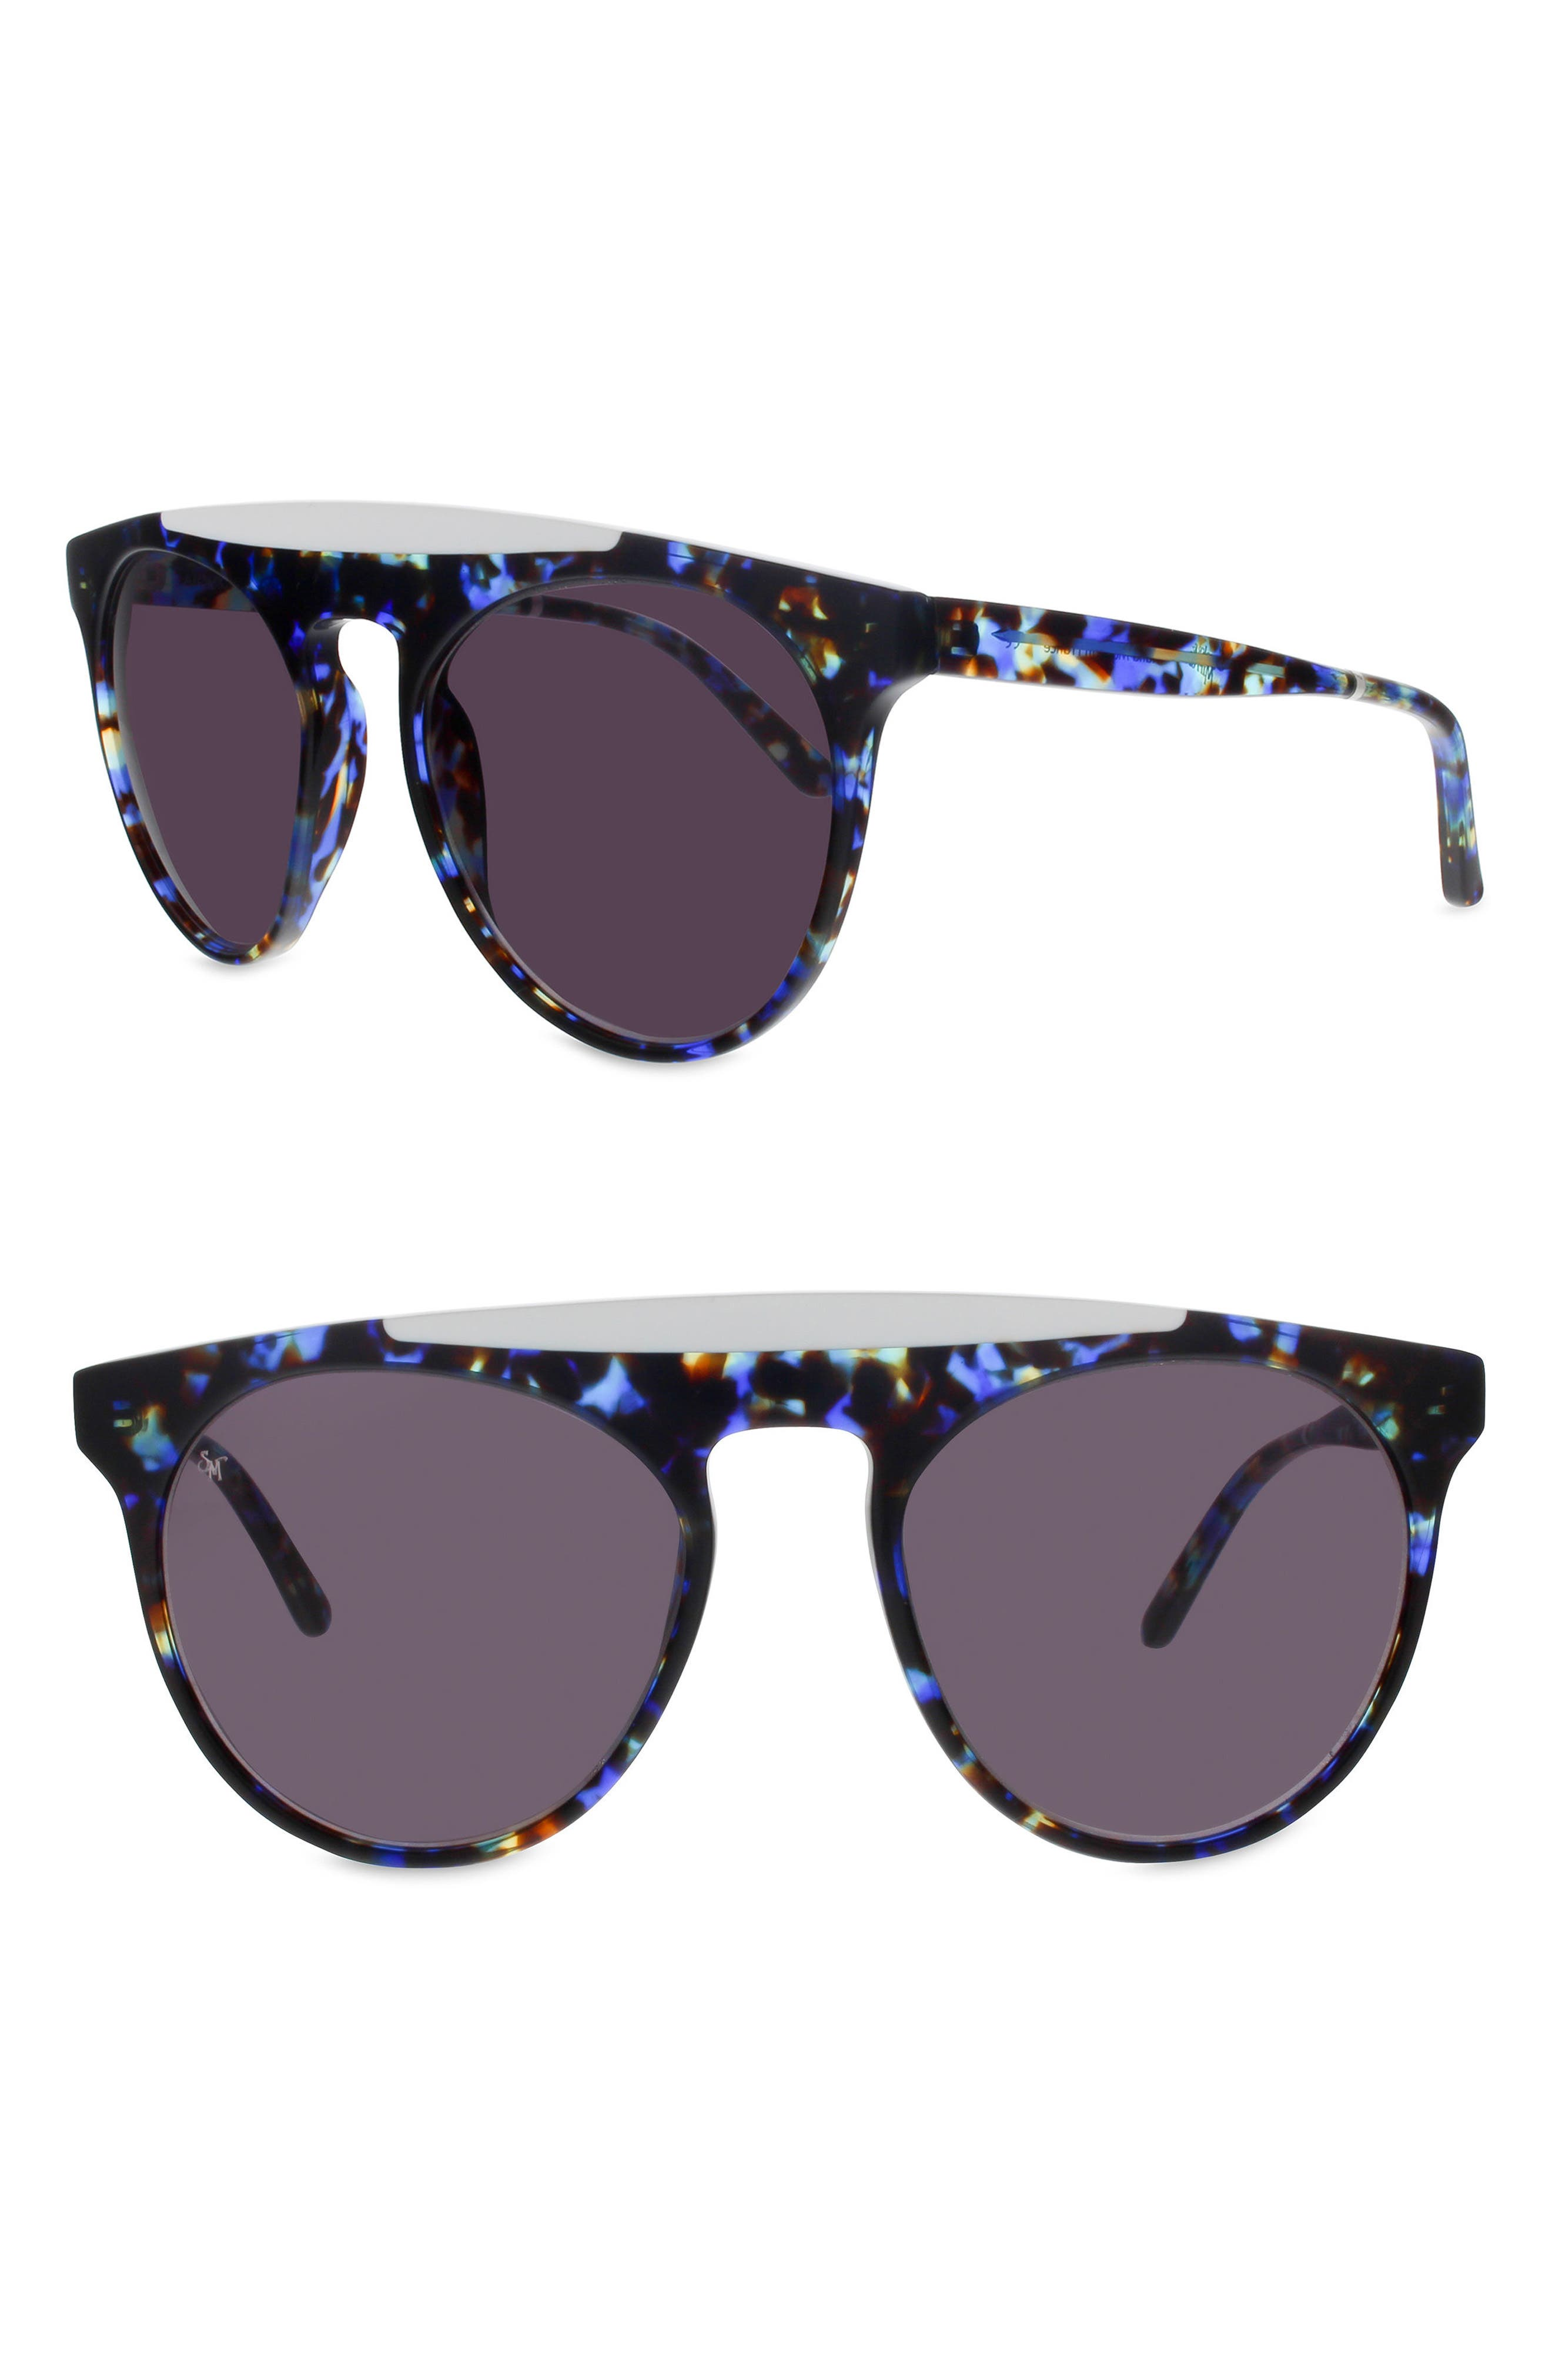 SMOKE X MIRRORS ATOMIC 52MM ROUND SUNGLASSES - BLUE GLAM/ WHITE